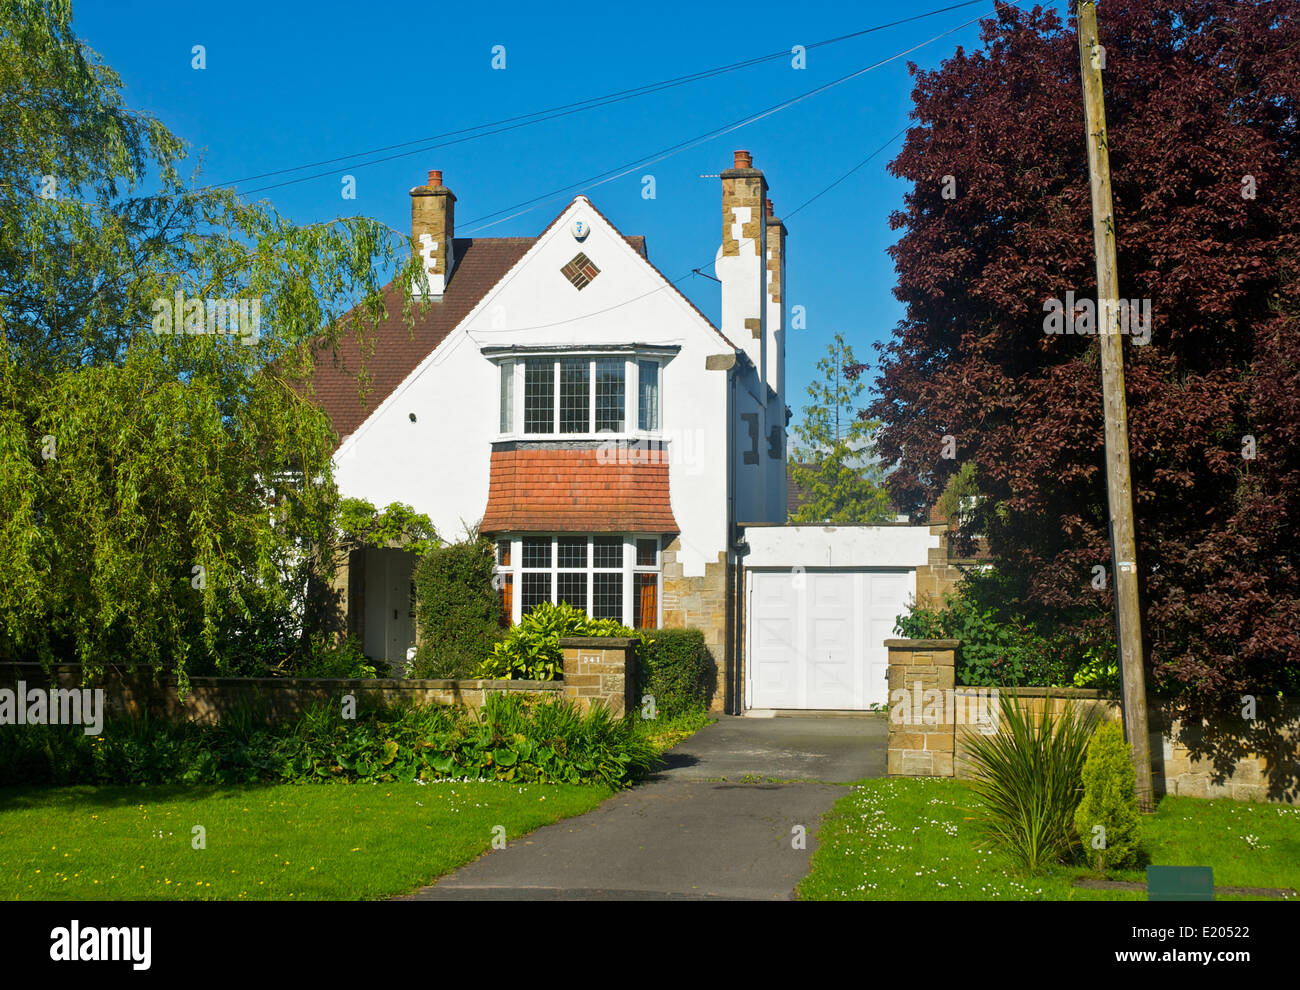 Detached house in Adel, near Leeds, West Yorkshire, England UK Stock Photo